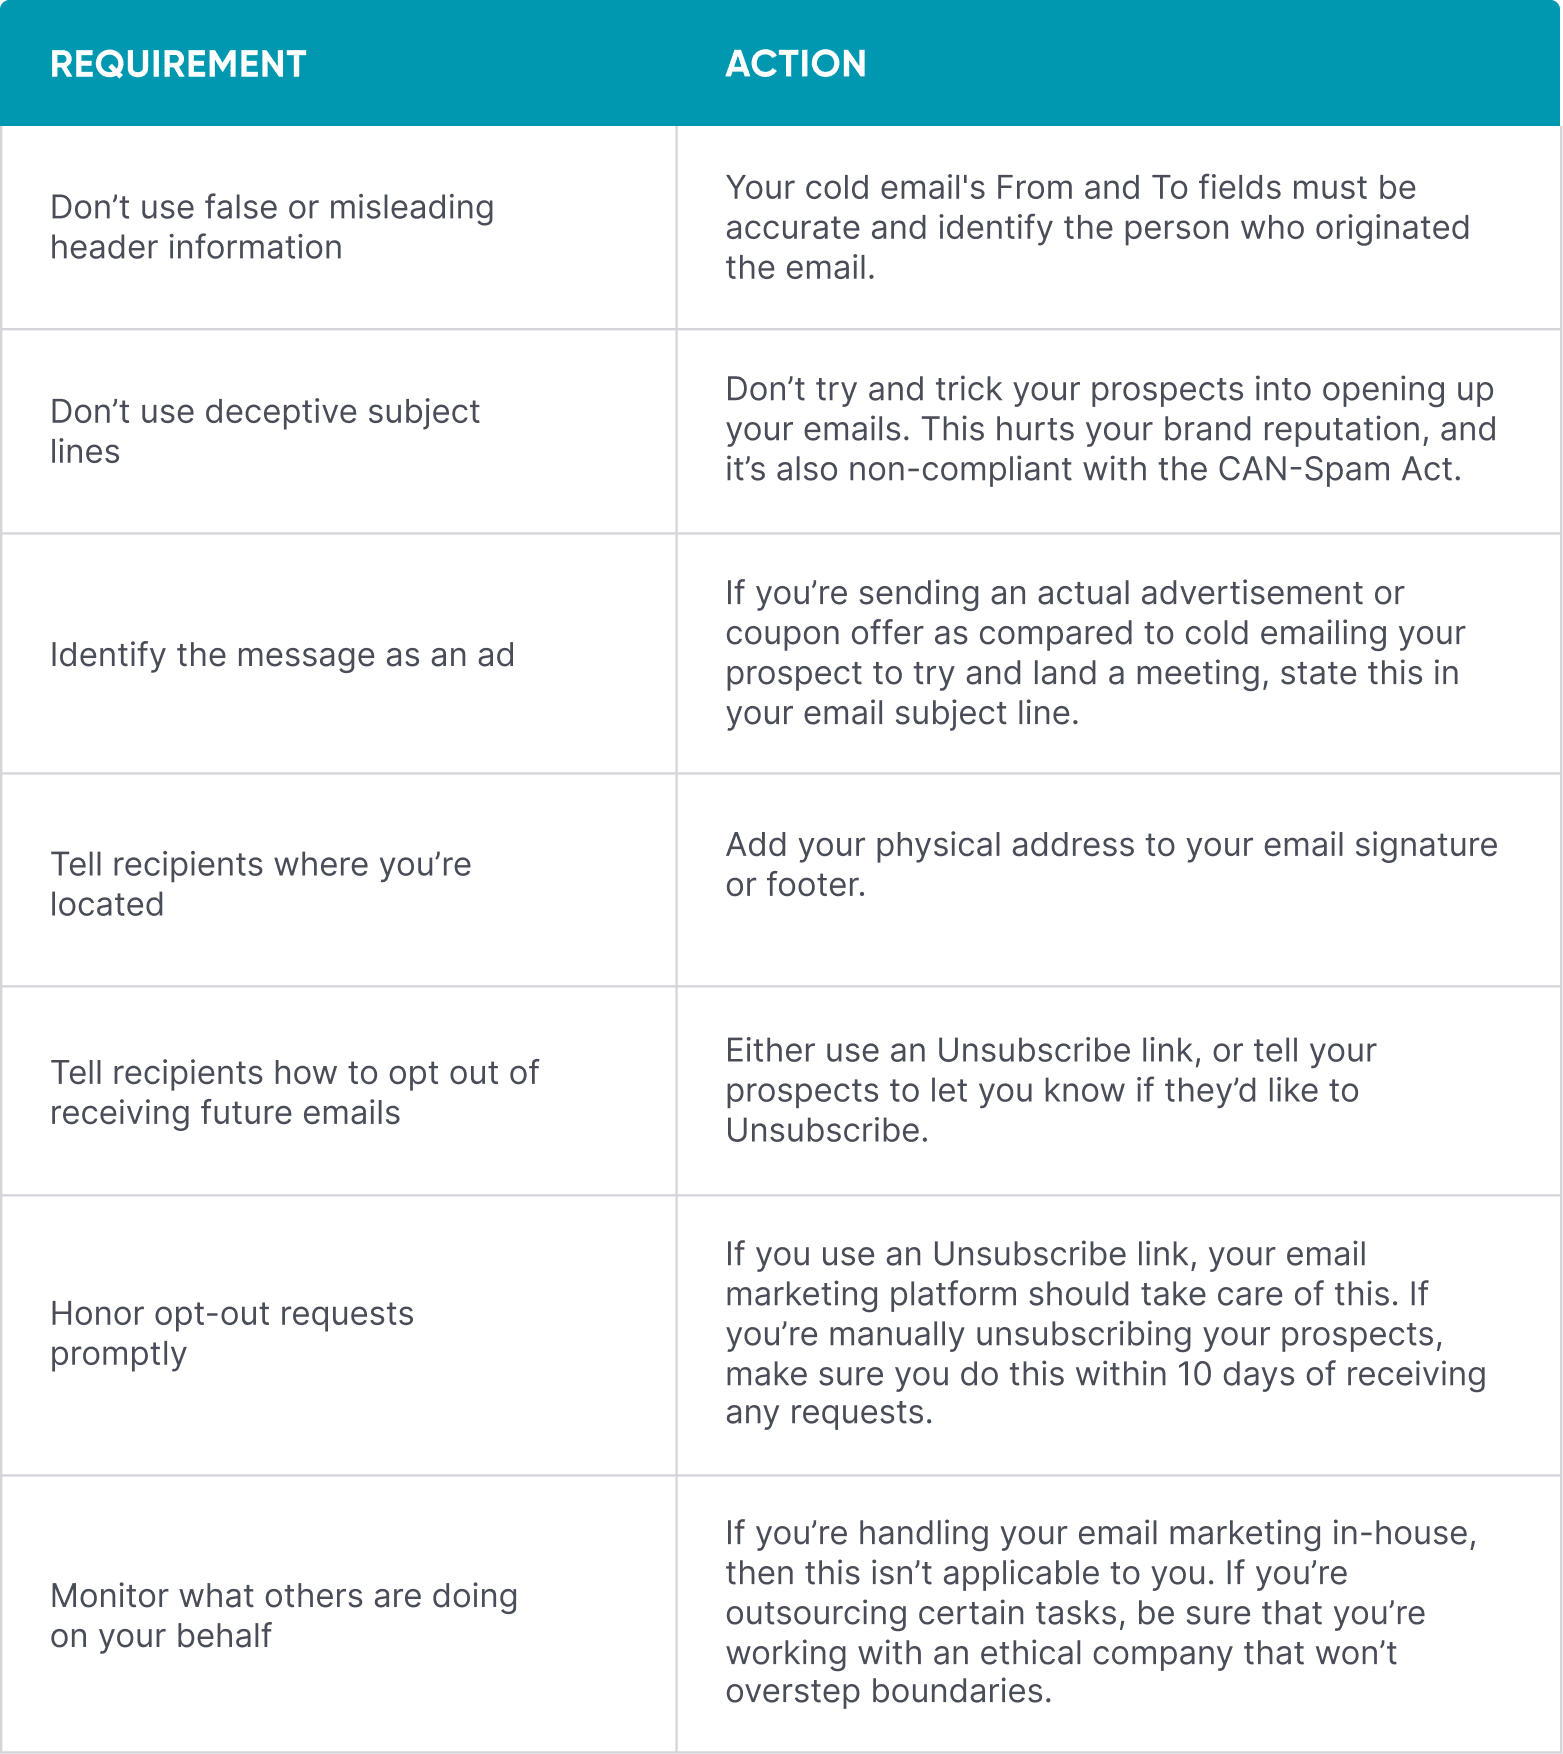 requirements, in the context of cold emails